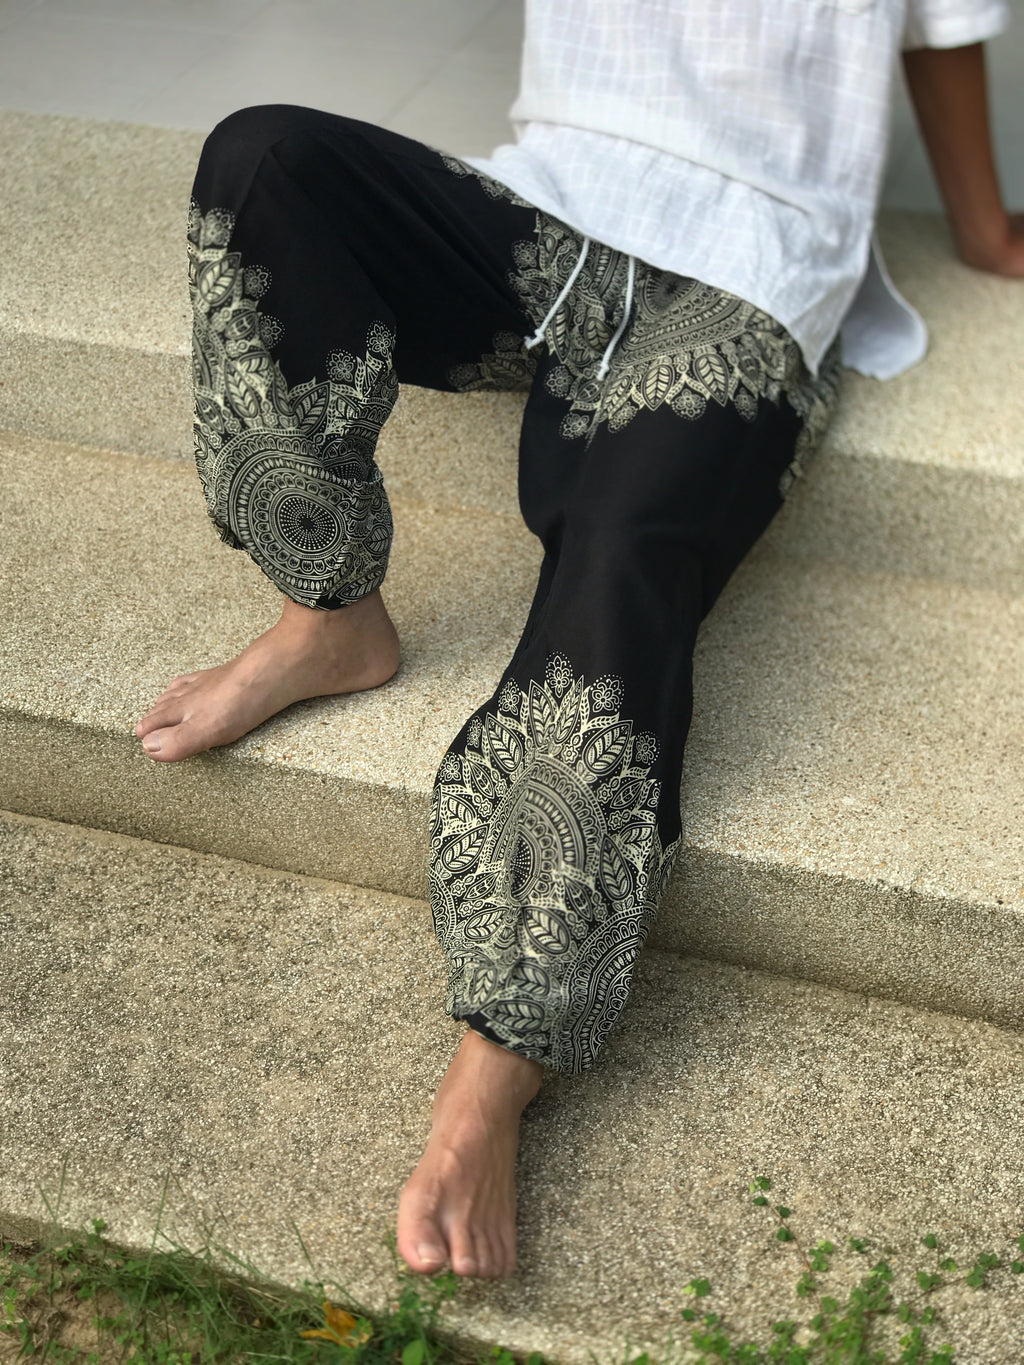 Black mandala harem pants for men's and women's